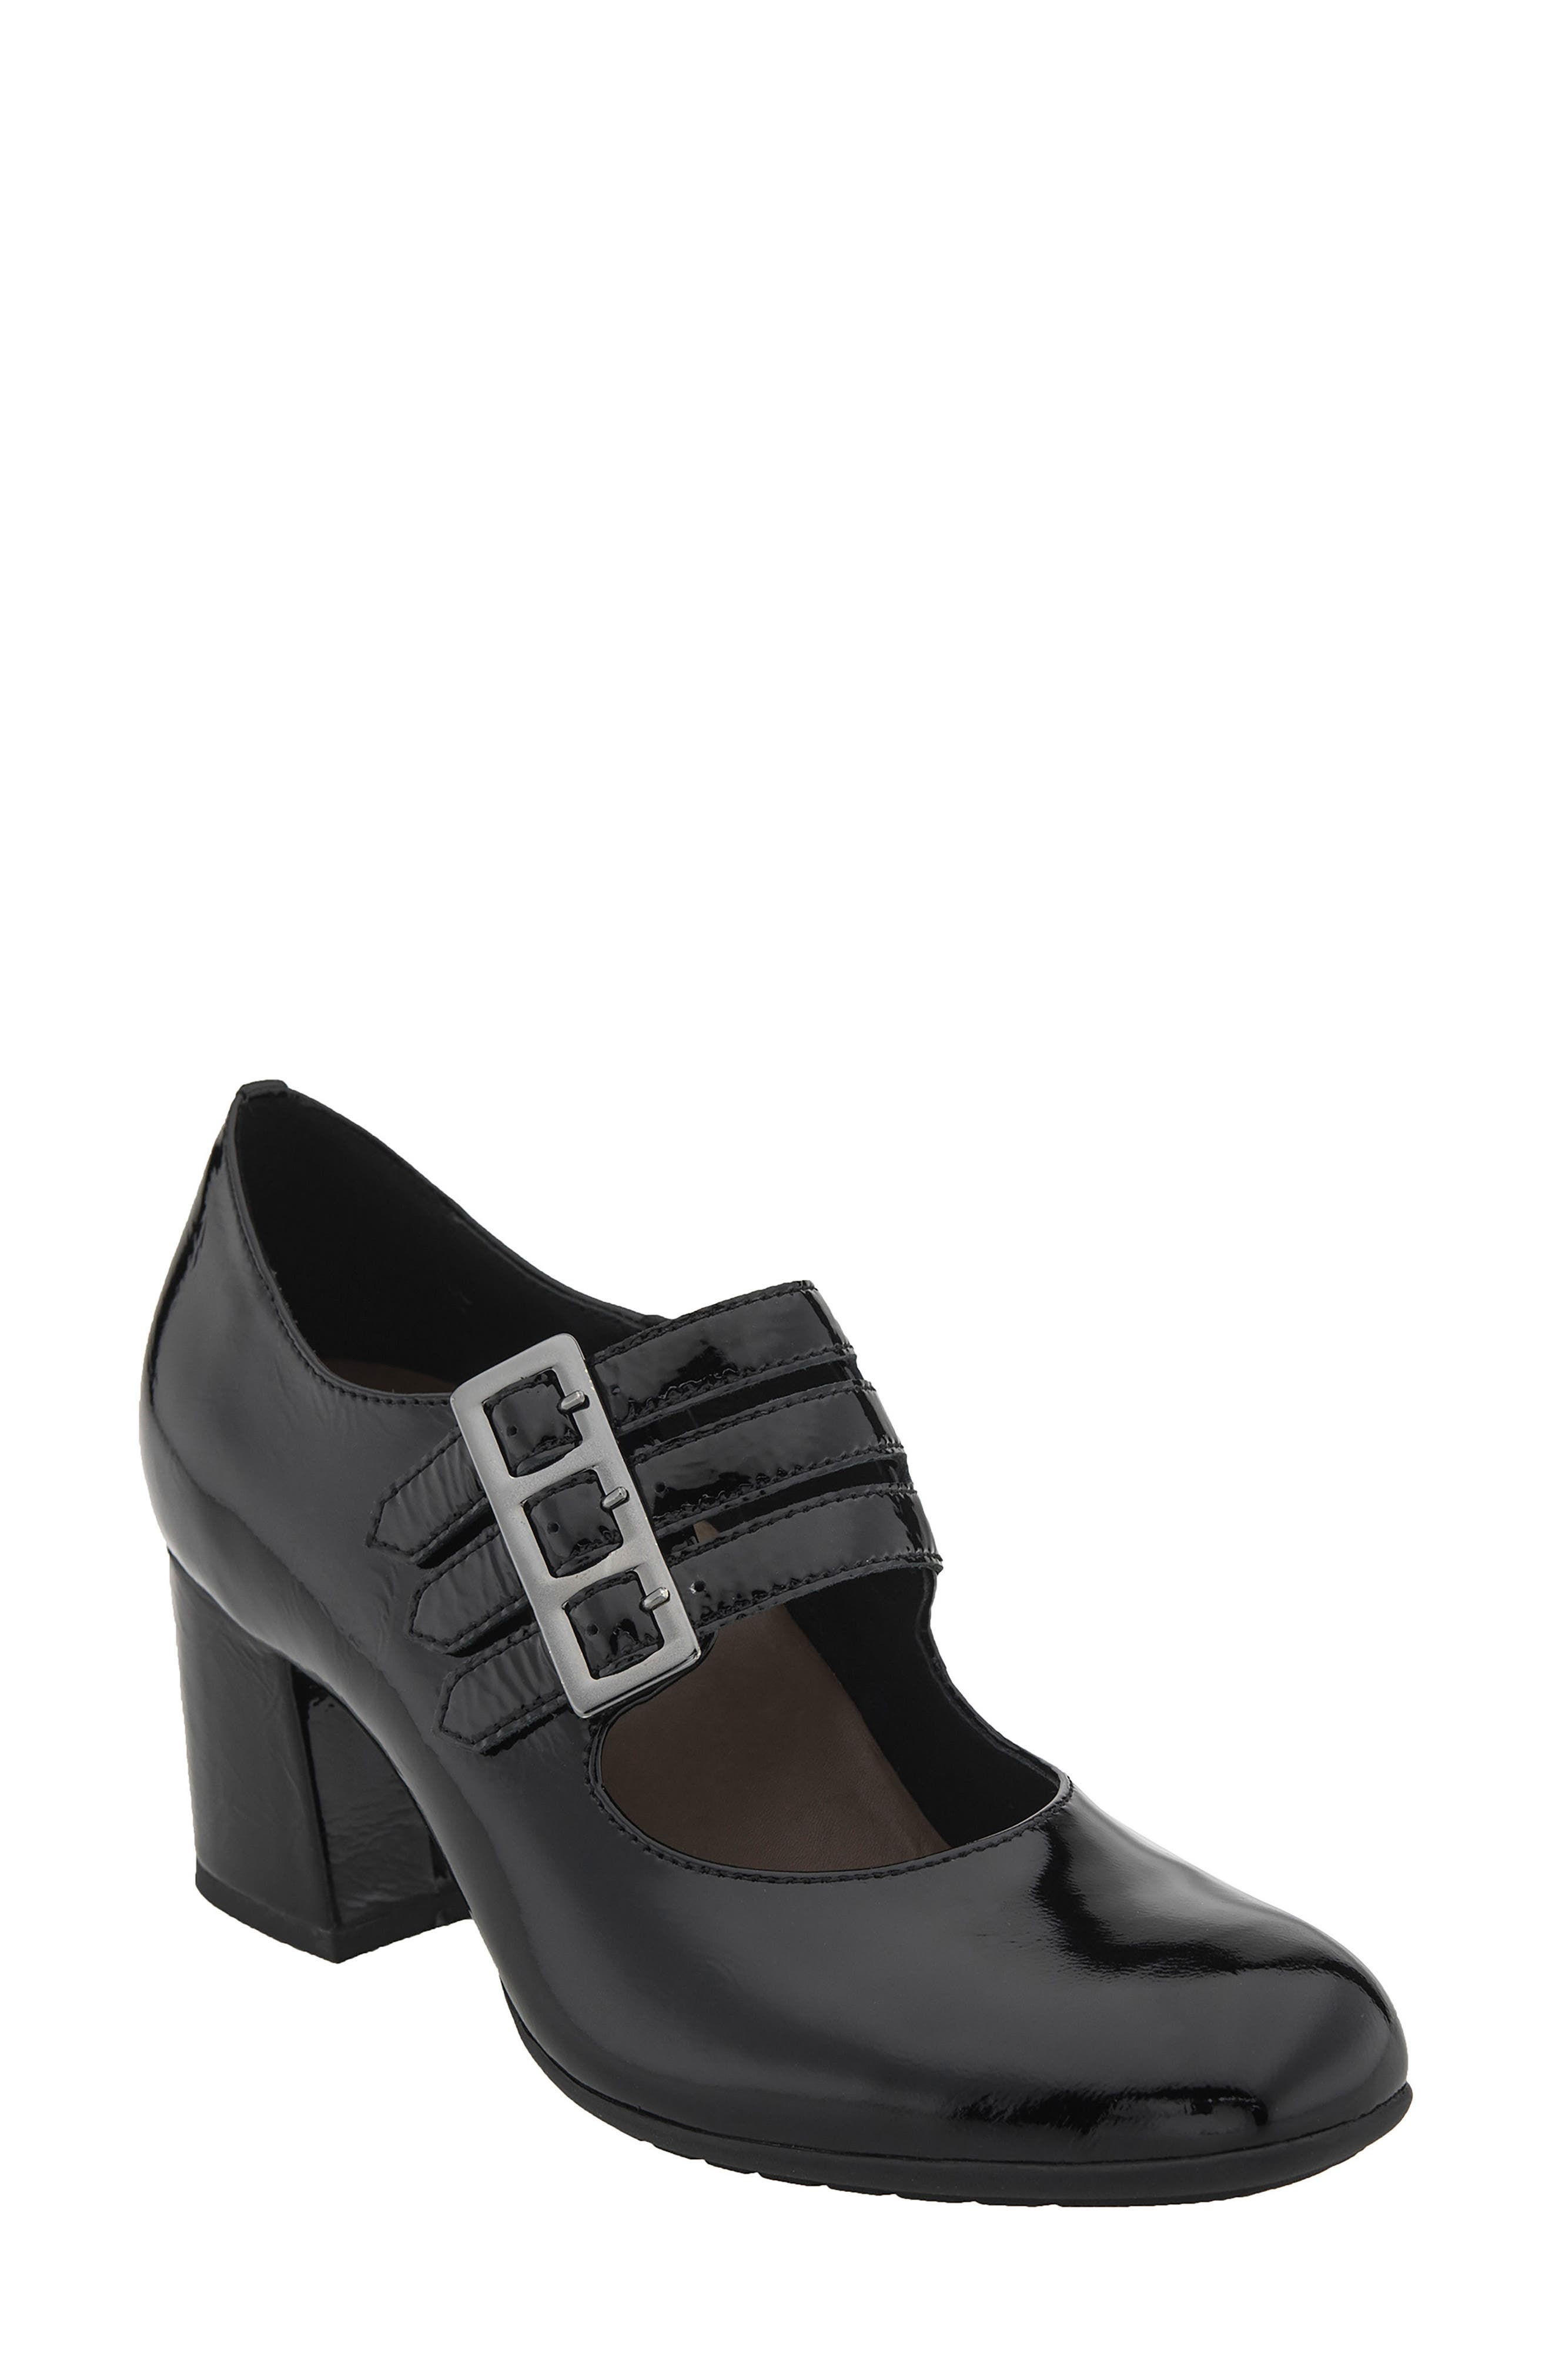 Fortuna Mary Jane Pump,                         Main,                         color, Black Patent Leather